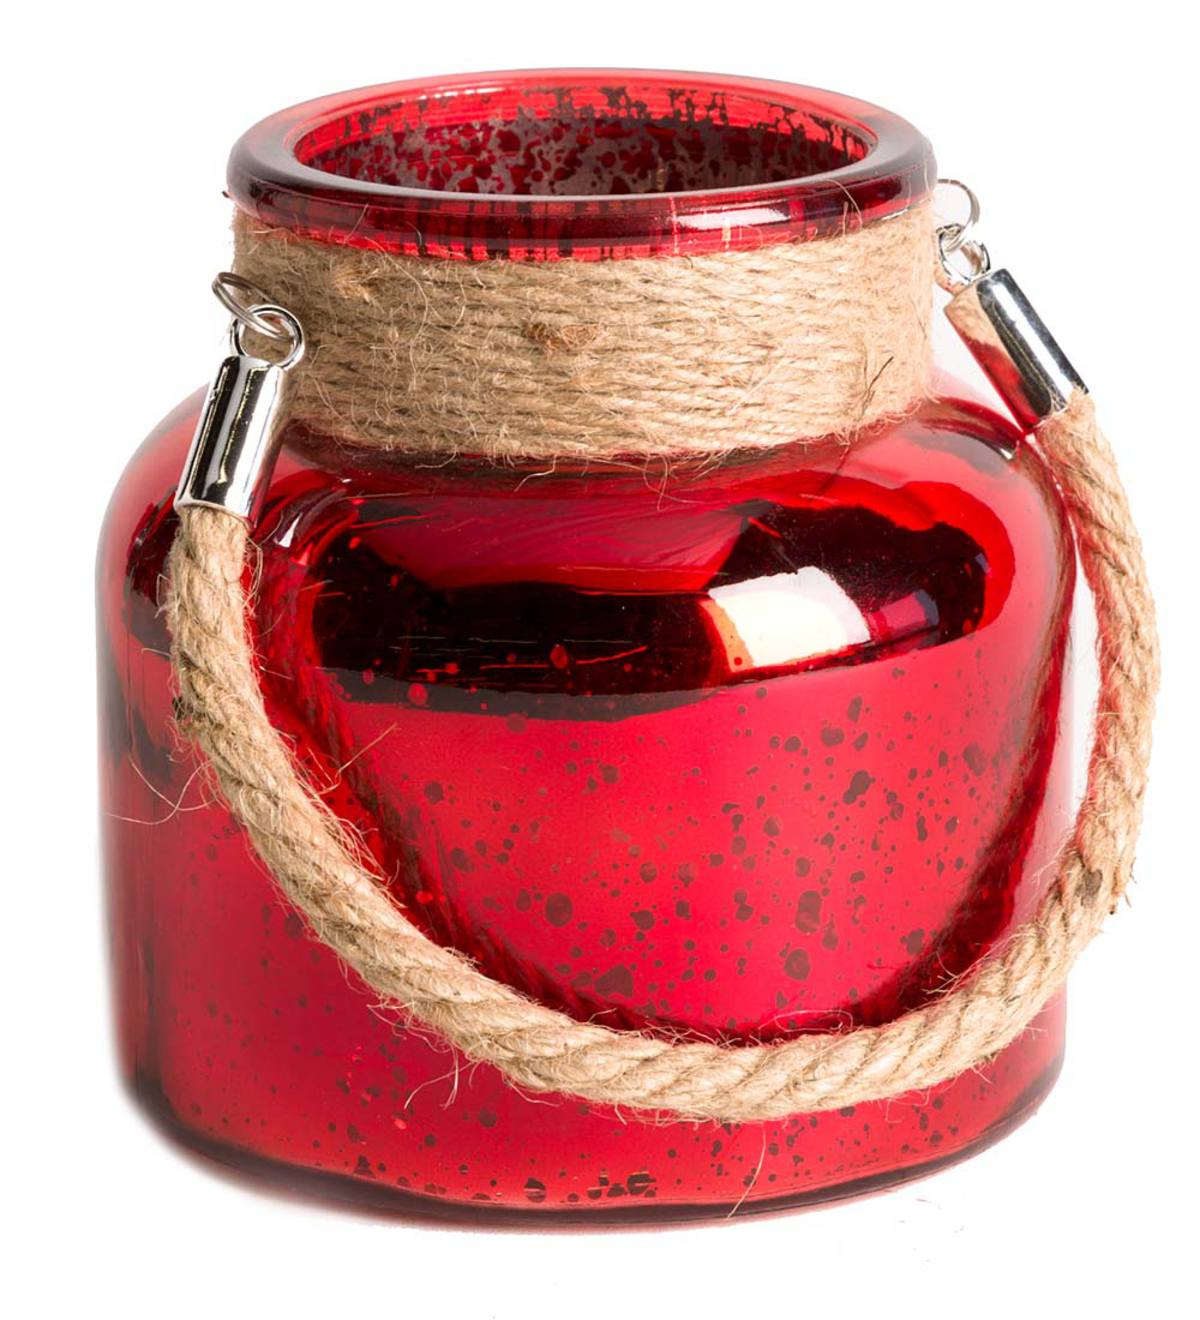 Mercury Glass Jar with LED Lights - Red